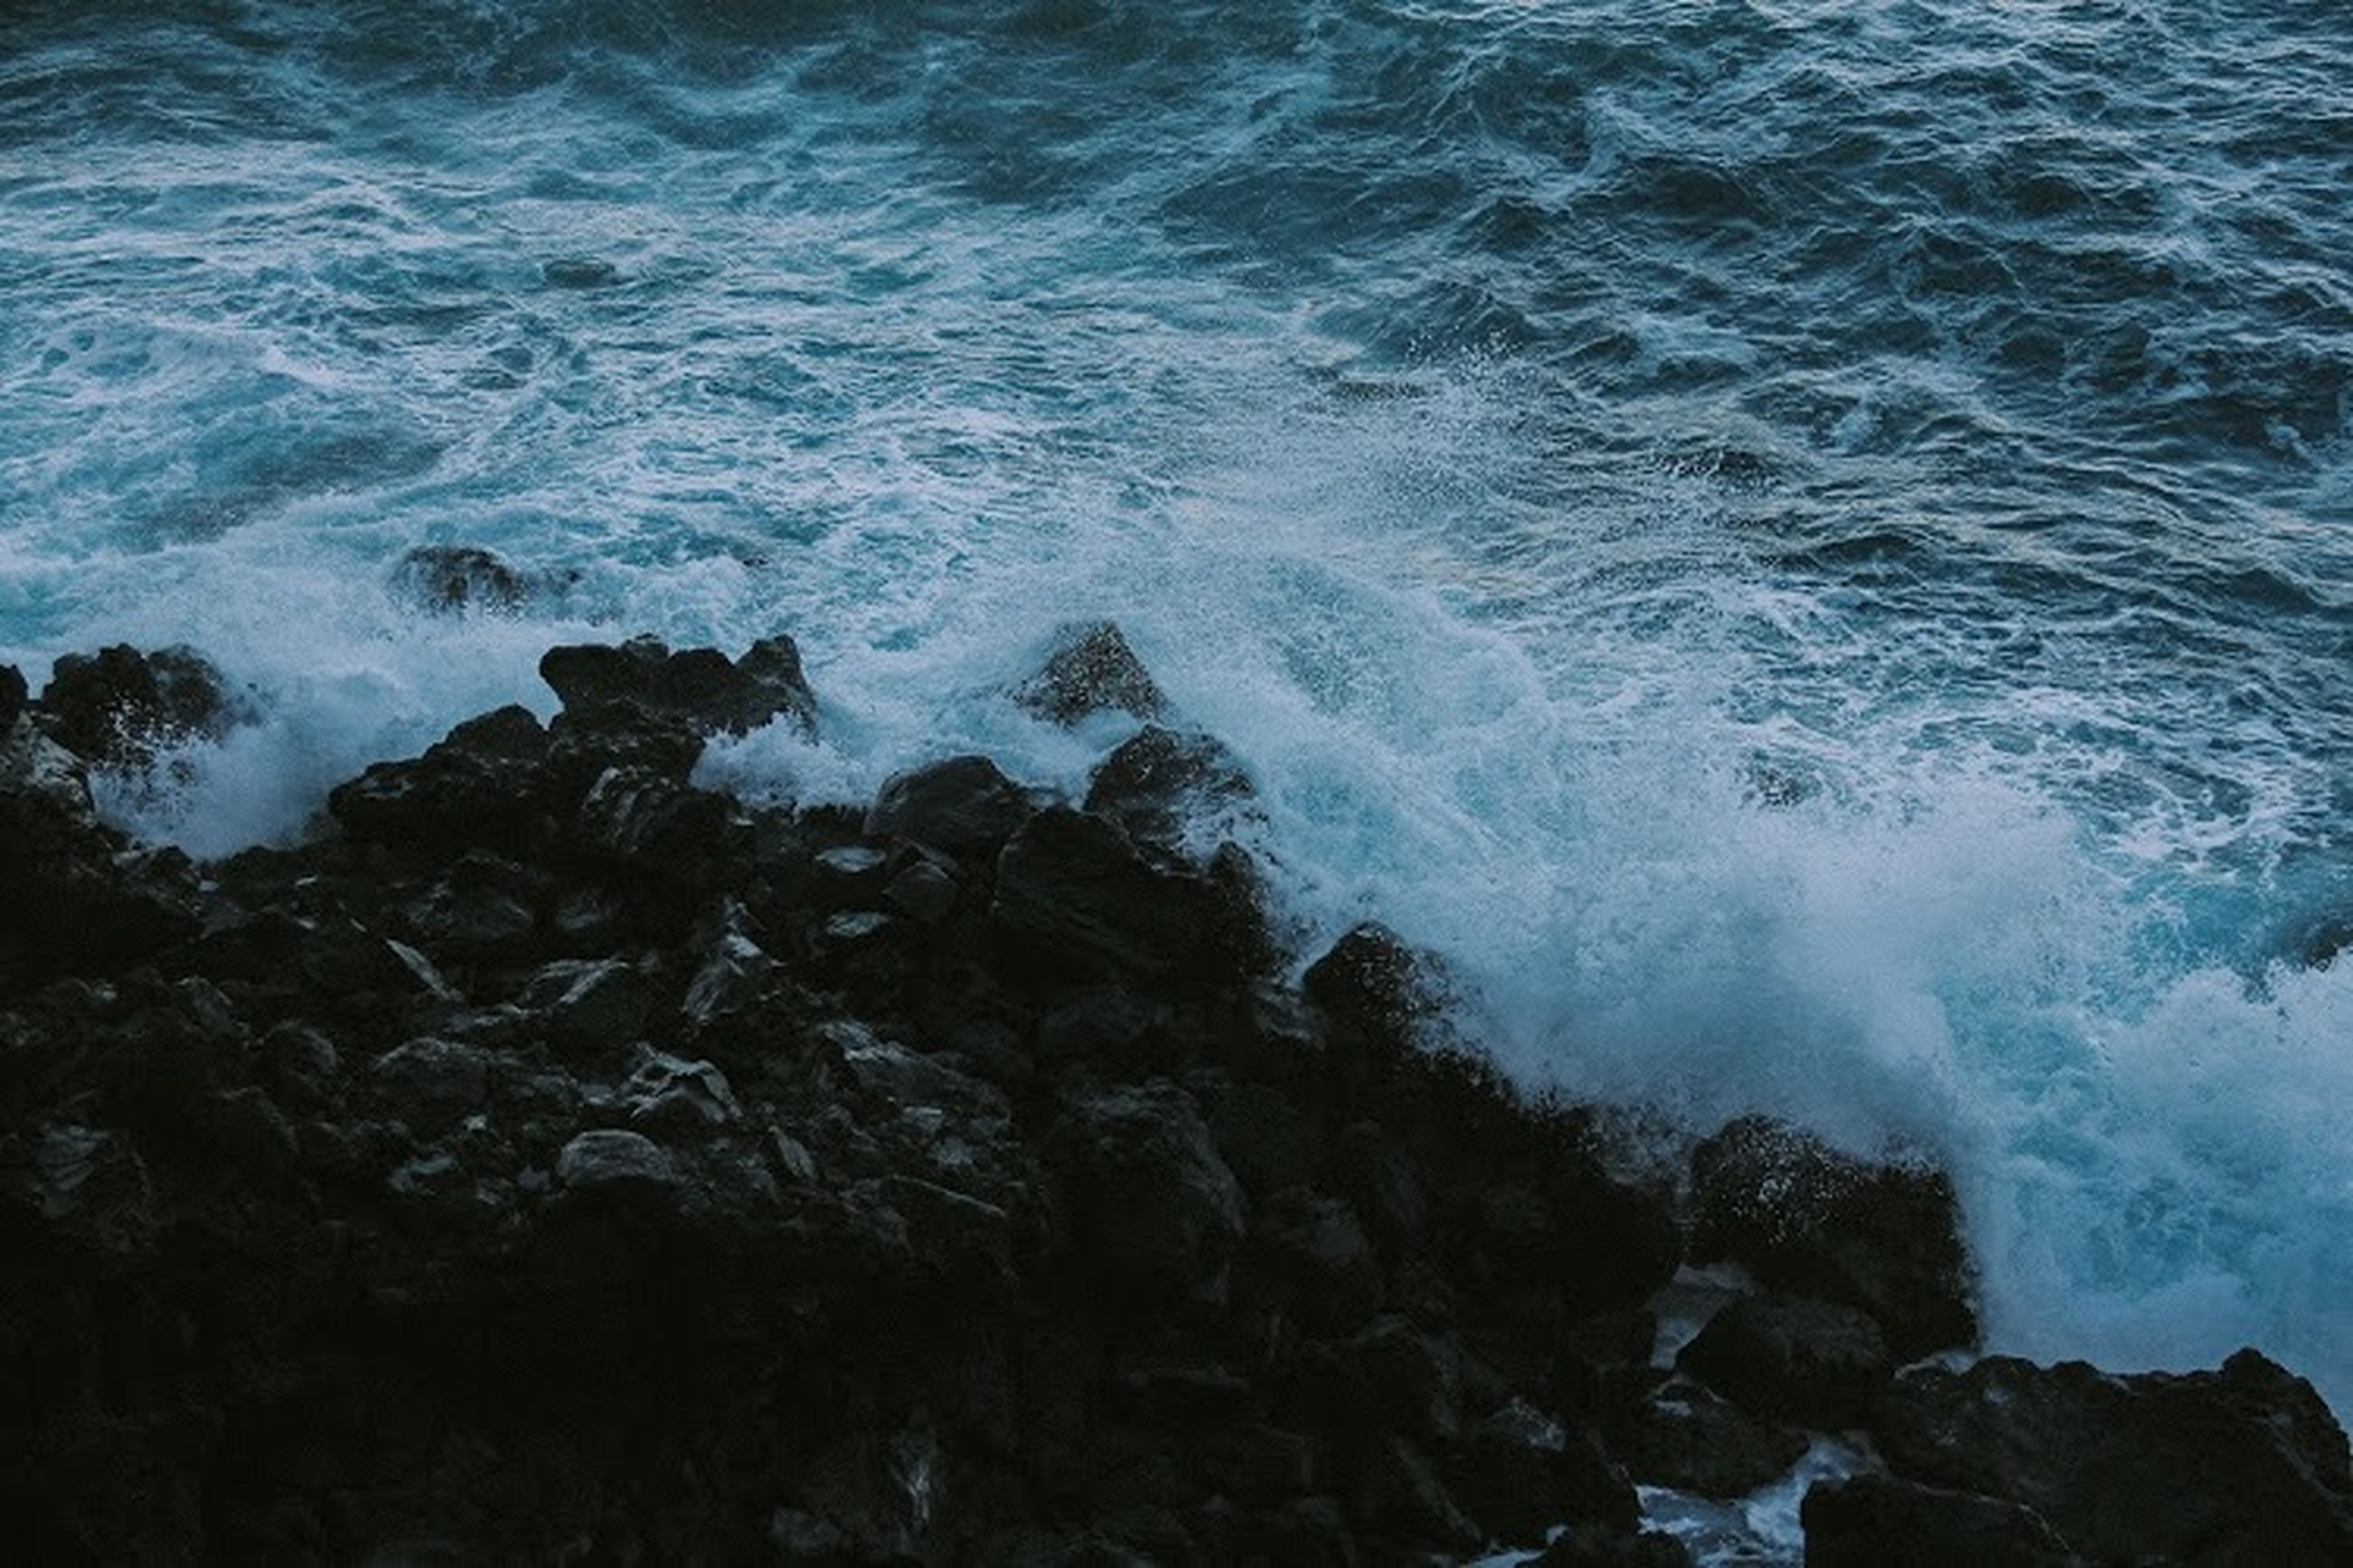 sea, rock, water, motion, rock - object, wave, solid, beauty in nature, no people, rock formation, sport, beach, nature, splashing, land, power in nature, power, scenics - nature, outdoors, breaking, hitting, flowing water, rocky coastline